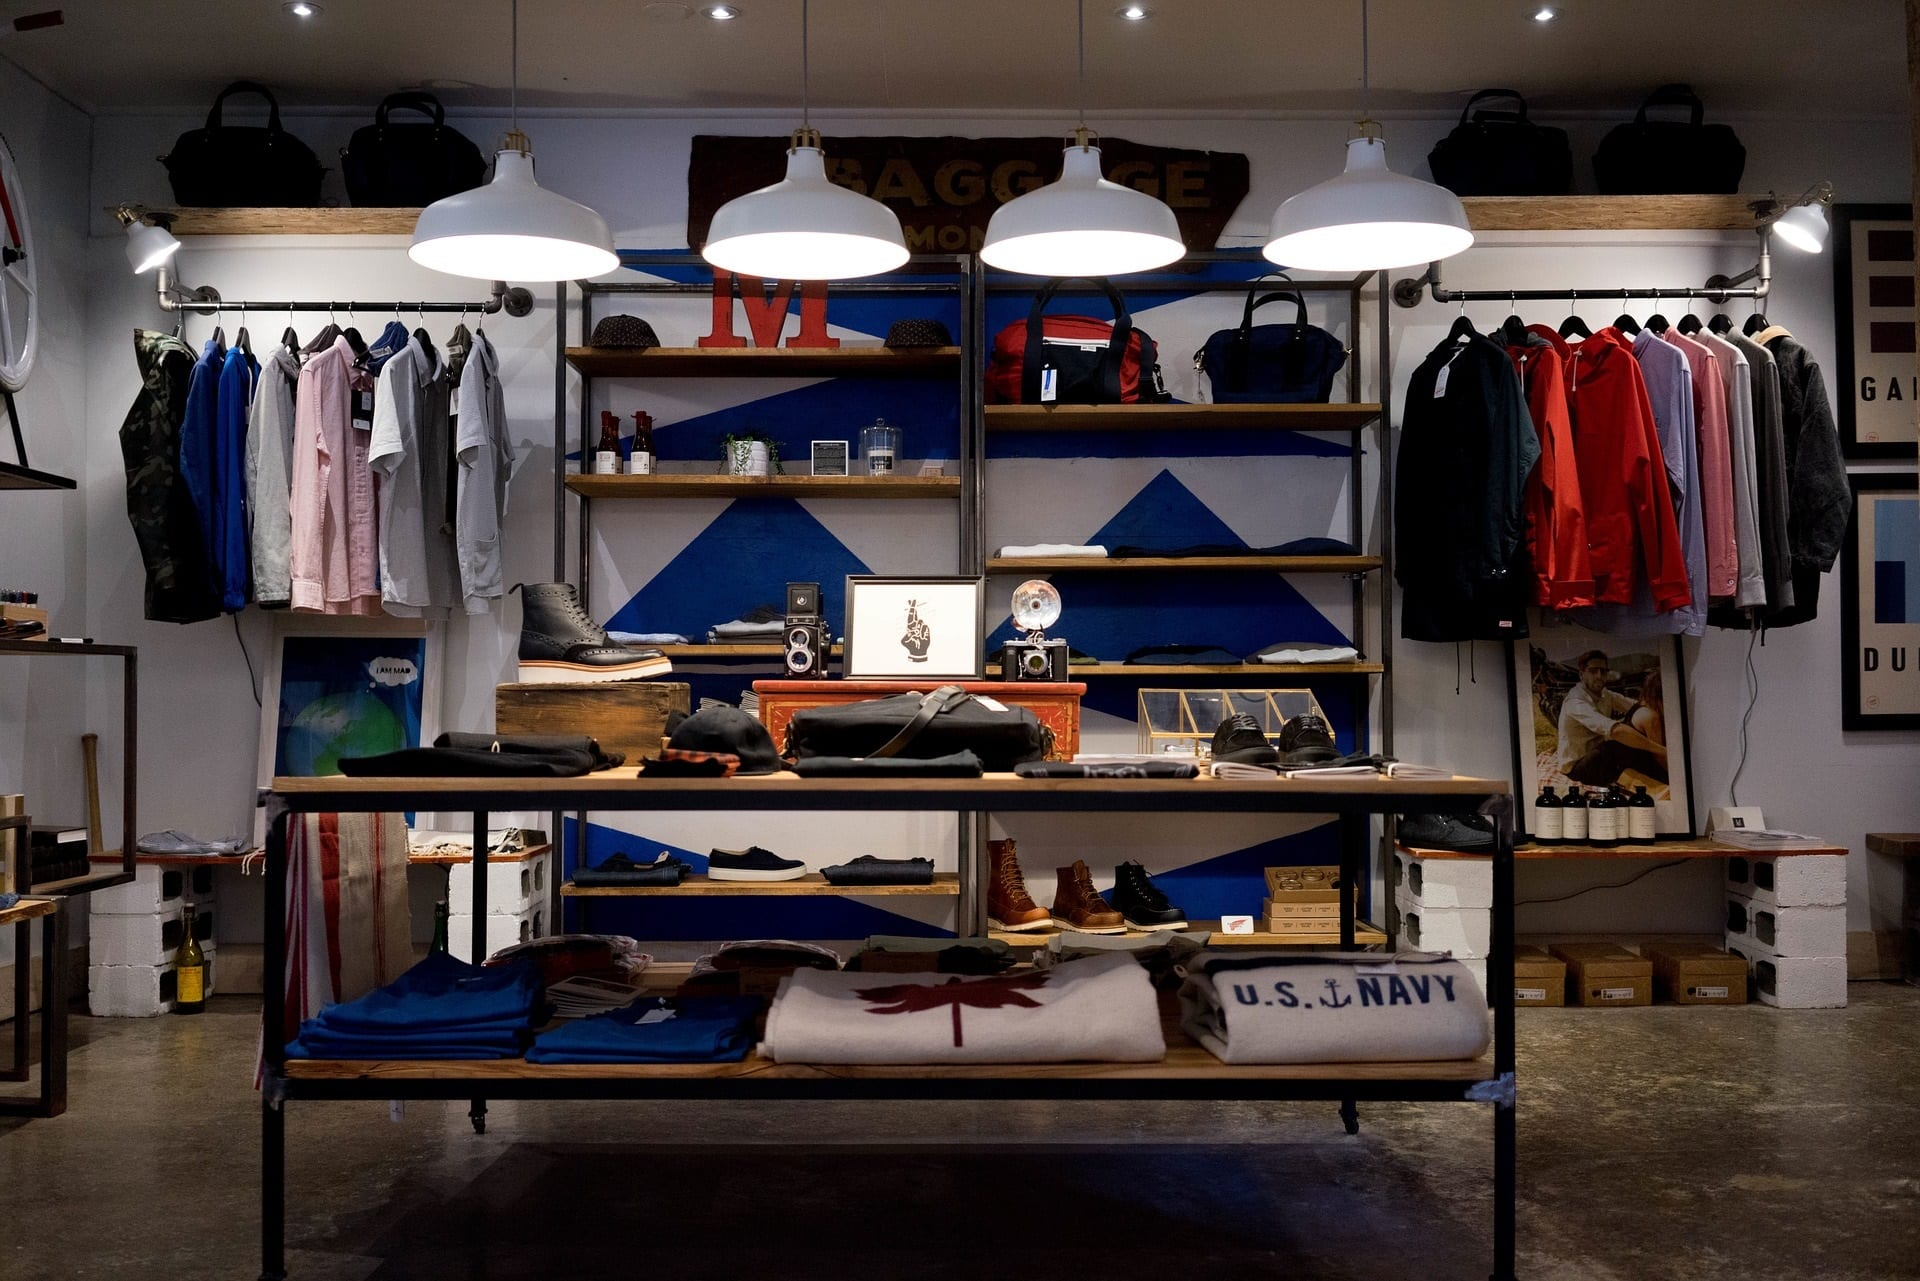 4 trends in the retail industry